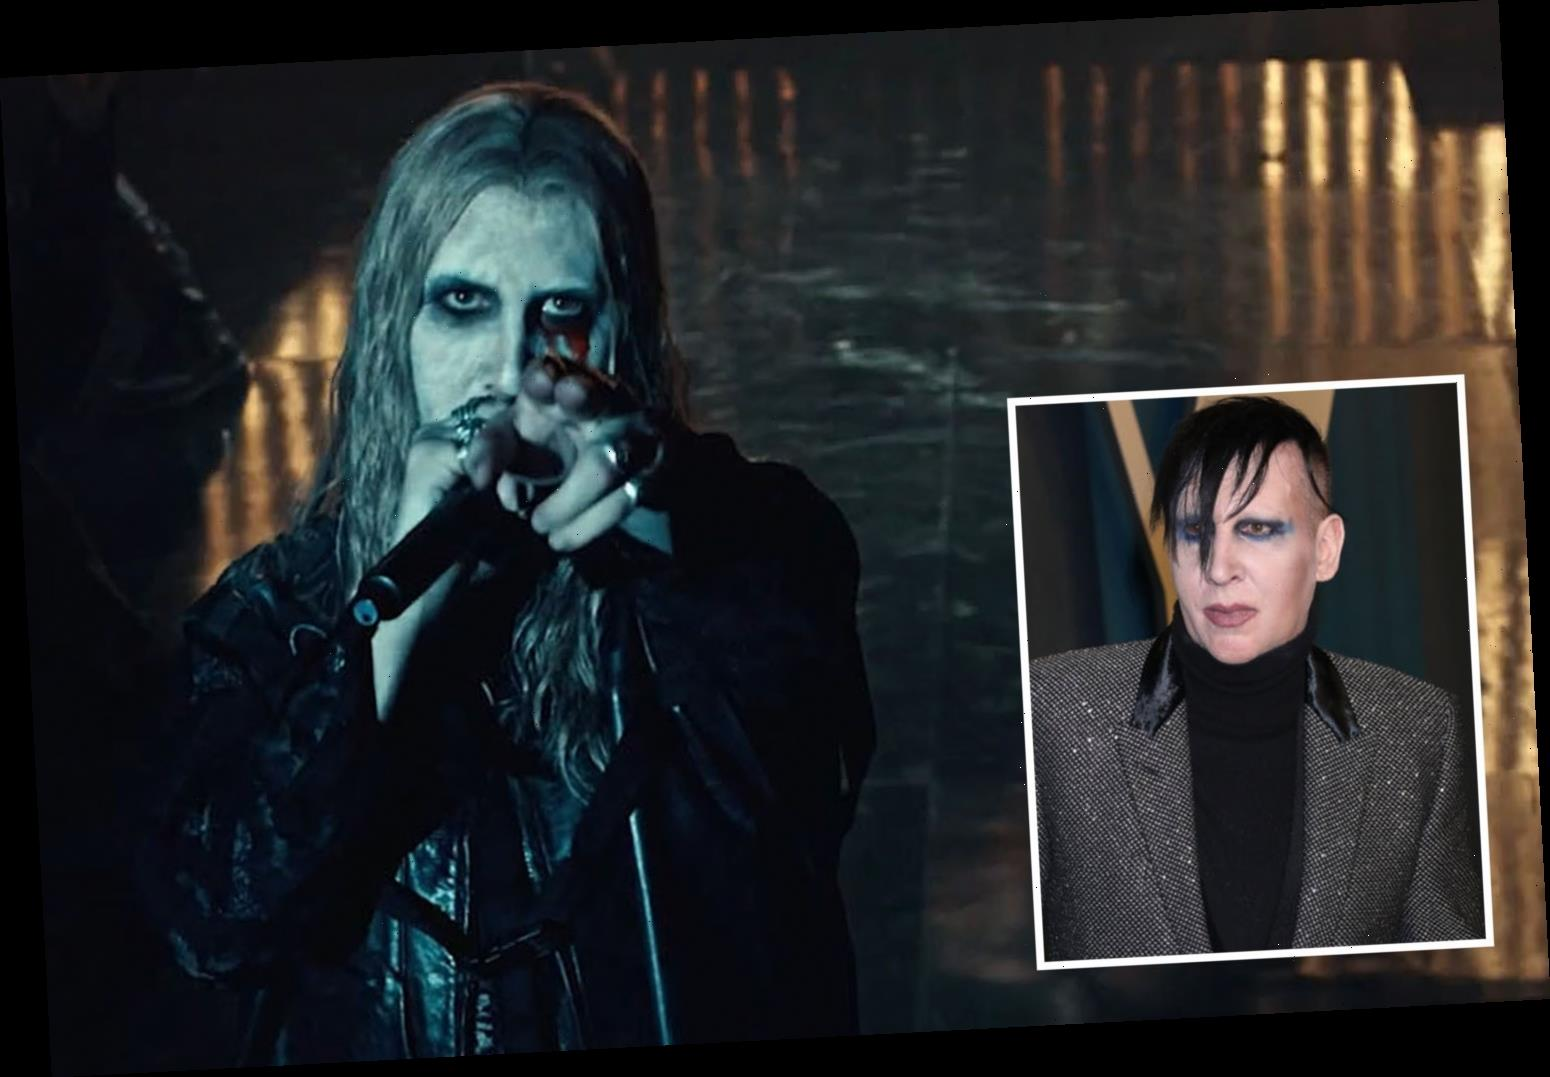 Marilyn Manson transformed into murderous rock star for role on American Gods before being axed